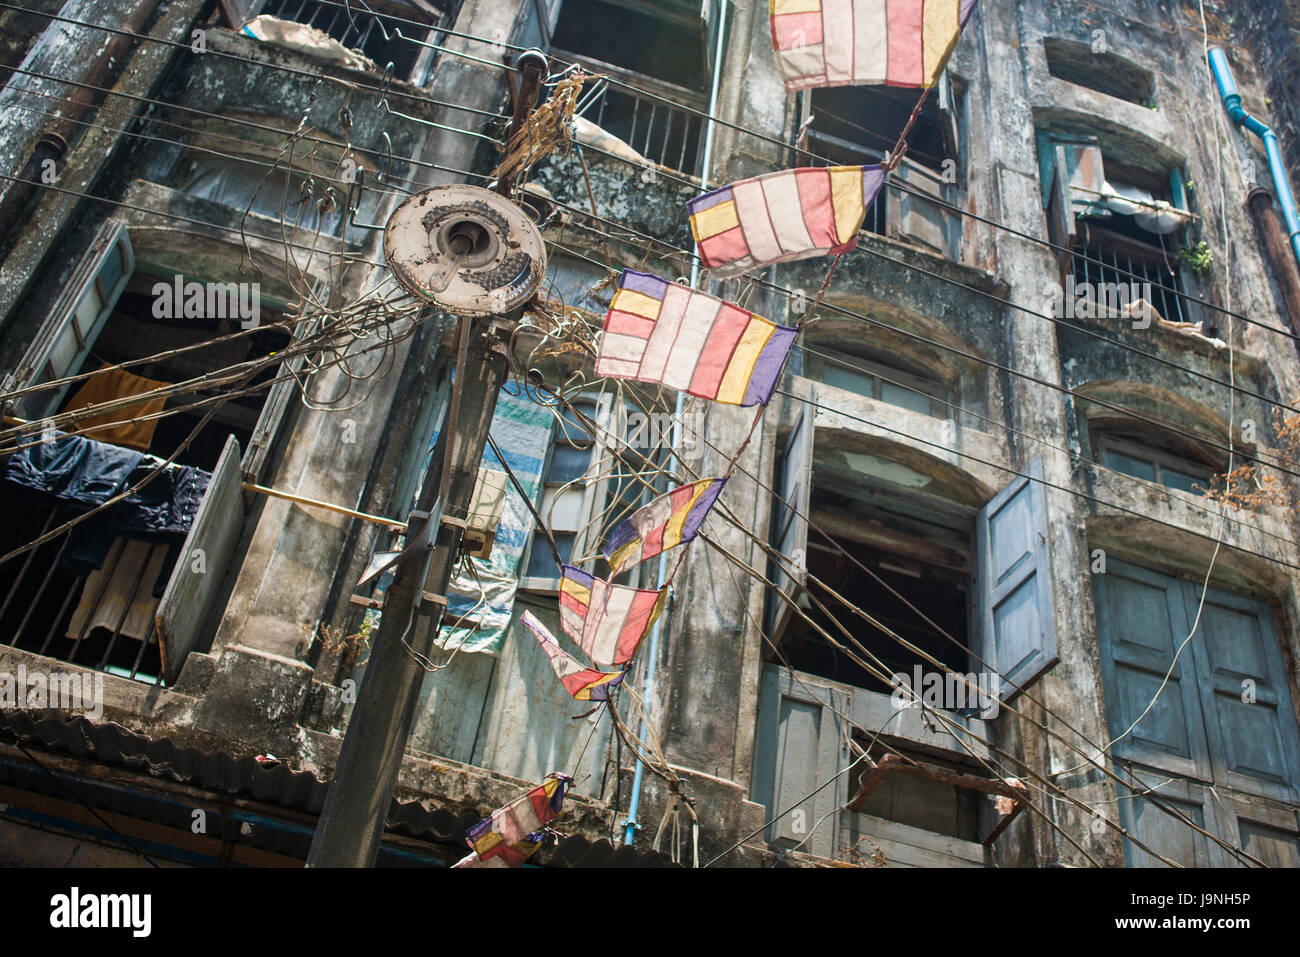 Looking up through a tangle of wires to a building in Yangon, Myanmar - Stock Image